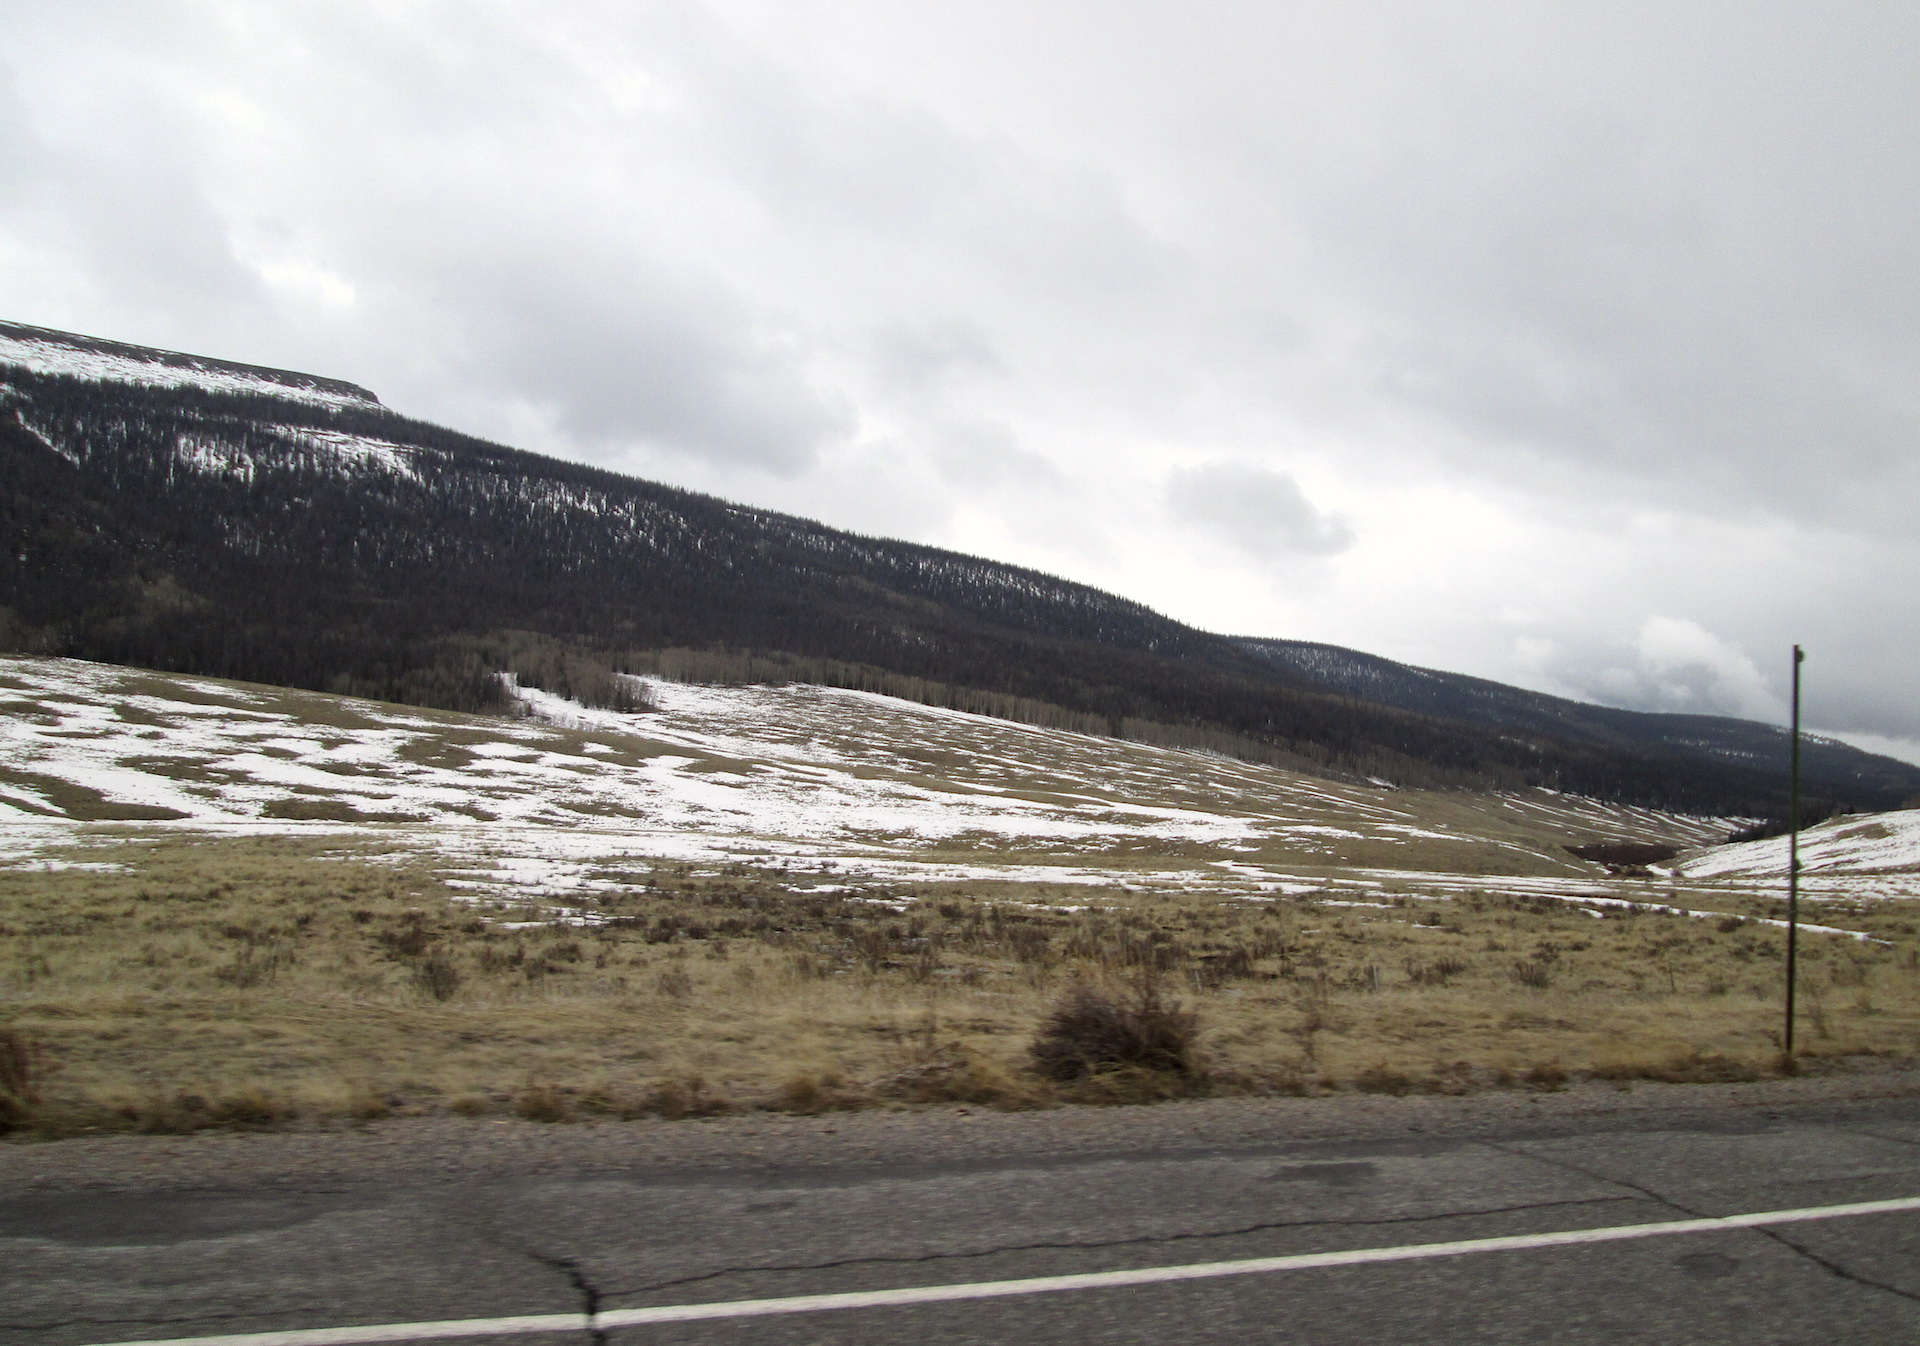 A few miles down the road from the Spring Creek site on April 15.  Snow cover depletes quickly with elevation.